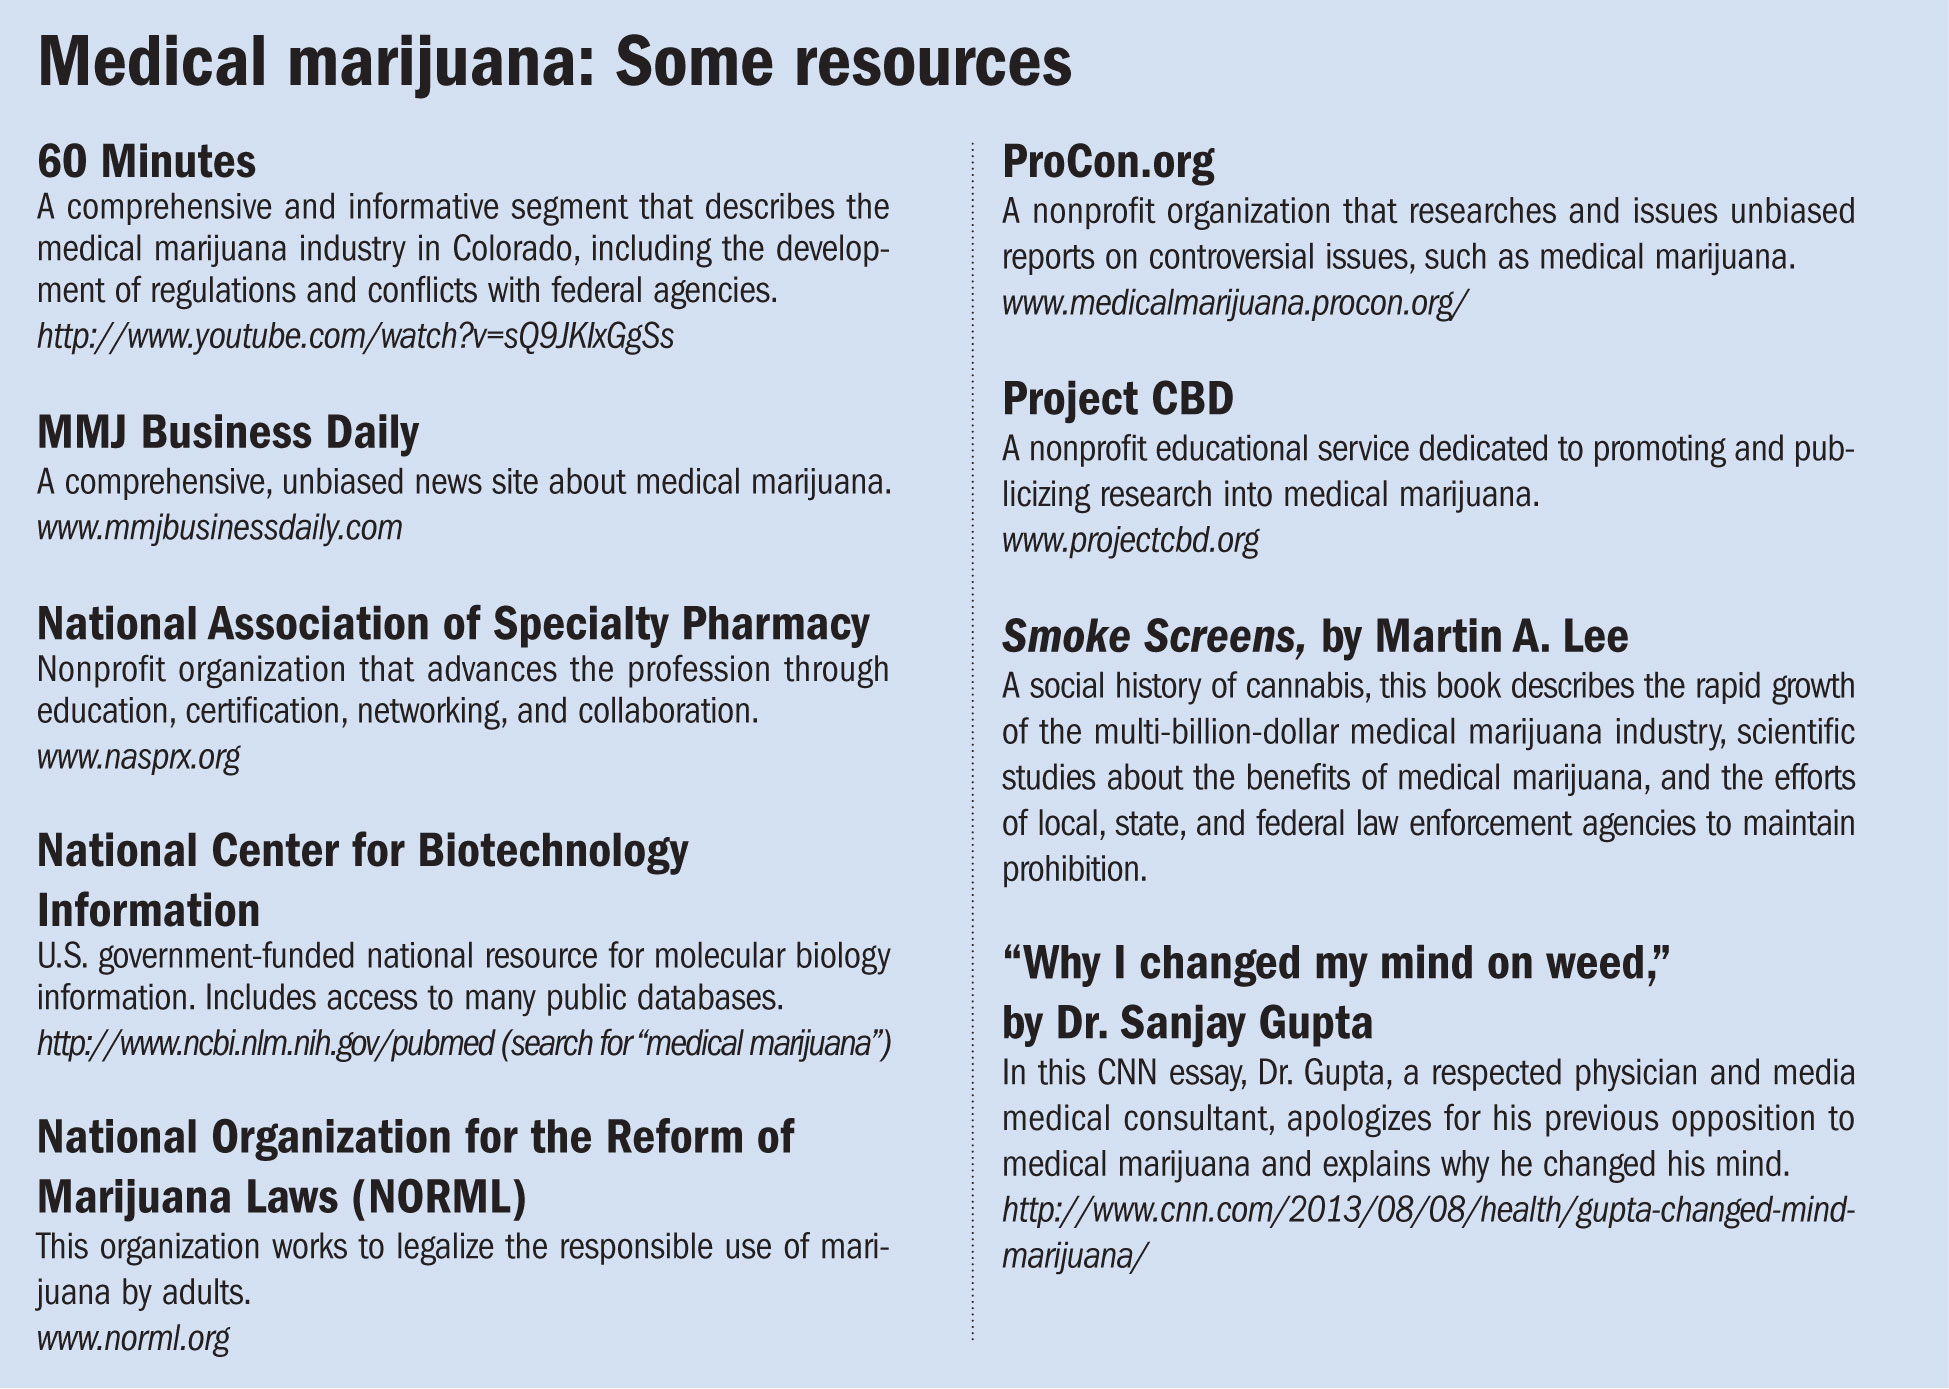 005 Essay Example Legalizing Marijuana Should Medical Legalized You Establ Drugs Dreaded Outline Persuasive Titles